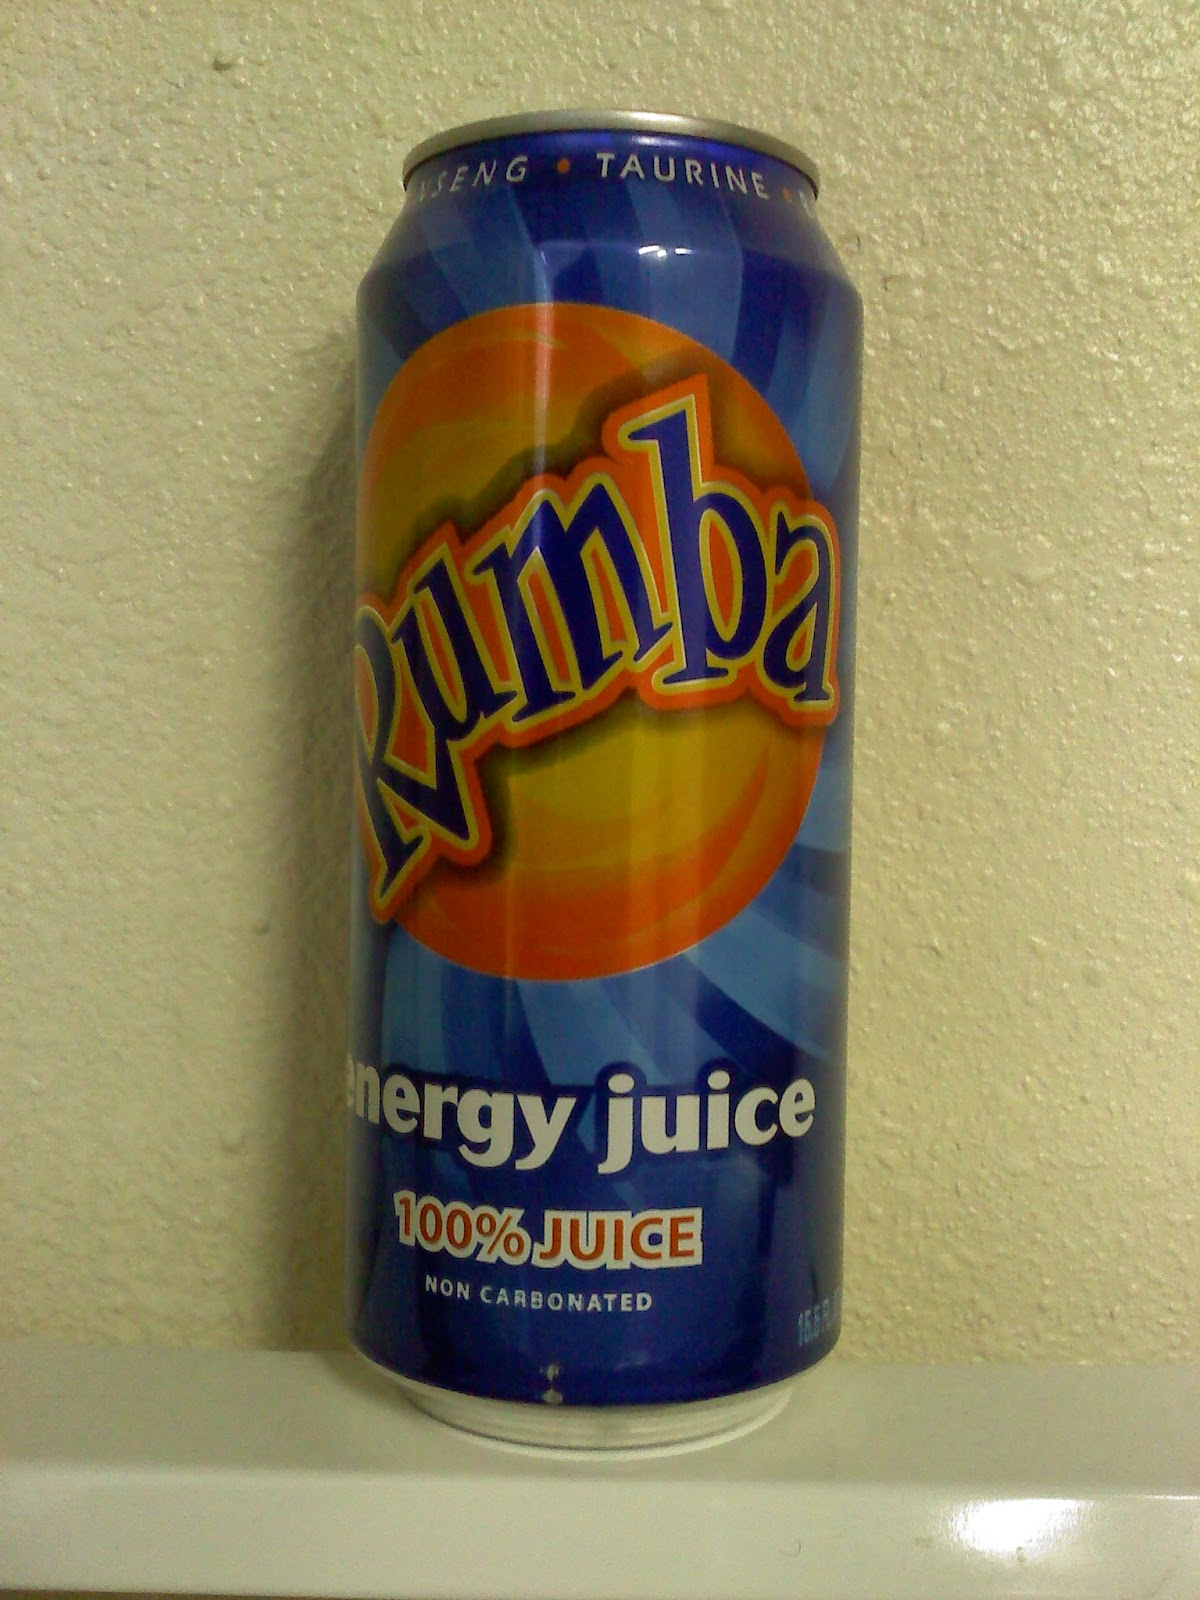 Caffeine Review For Rumba Energy Juice